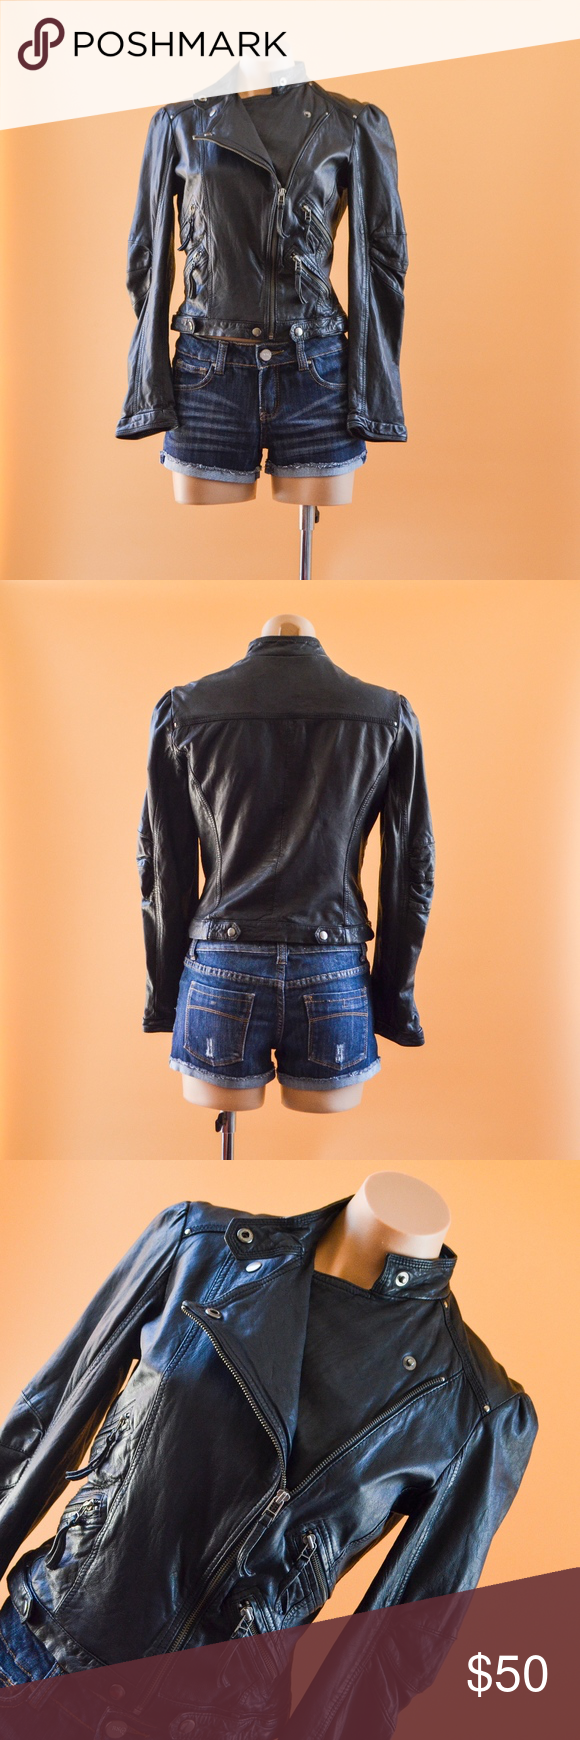 Zara Black Faux leather Motorcycle jacket Faux leather